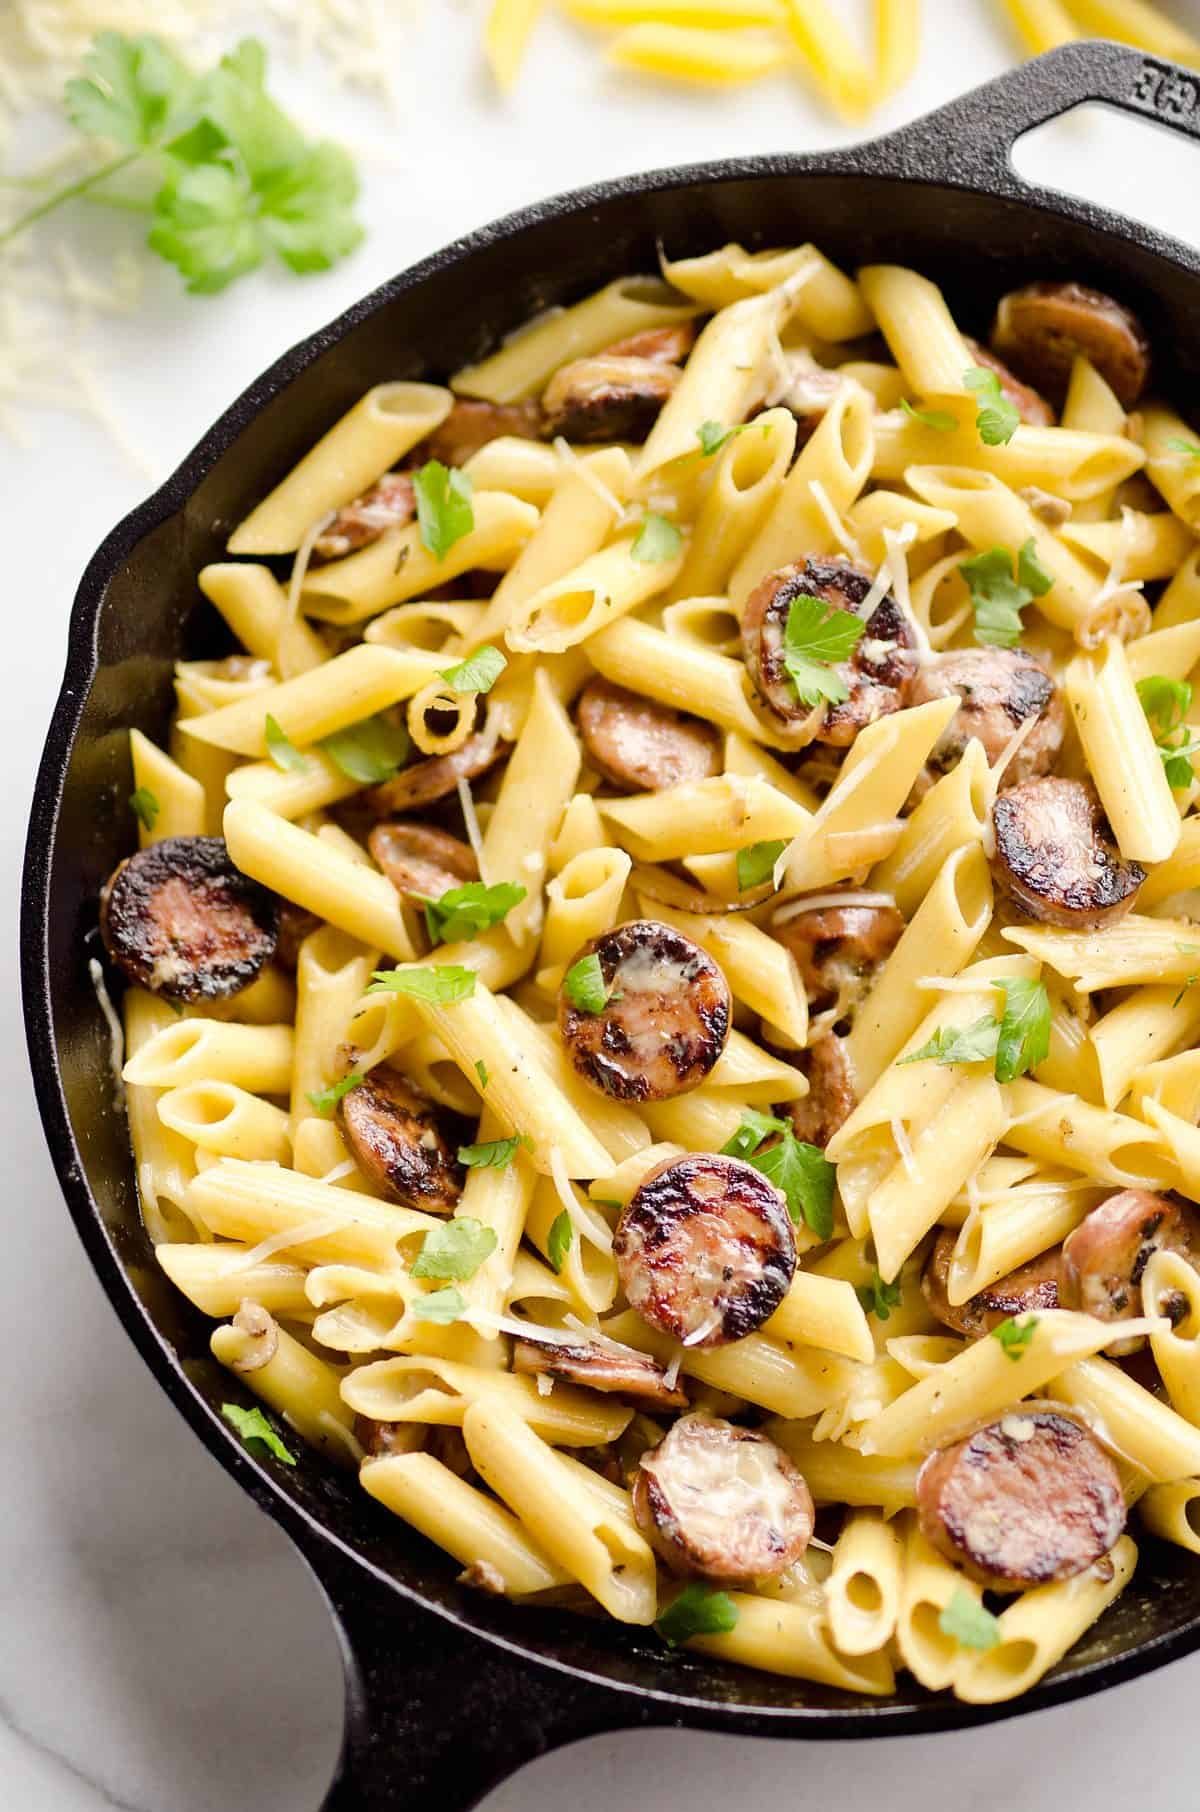 Chicken Sausage & Penne Skillet is an easy gluten free dinner idea loaded with rich flavors. Penne Pasta is tossed with a white wine and Parmesan cream sauce along with chicken apple sausage and shallots for a hearty dinner bursting with amazing flavor.